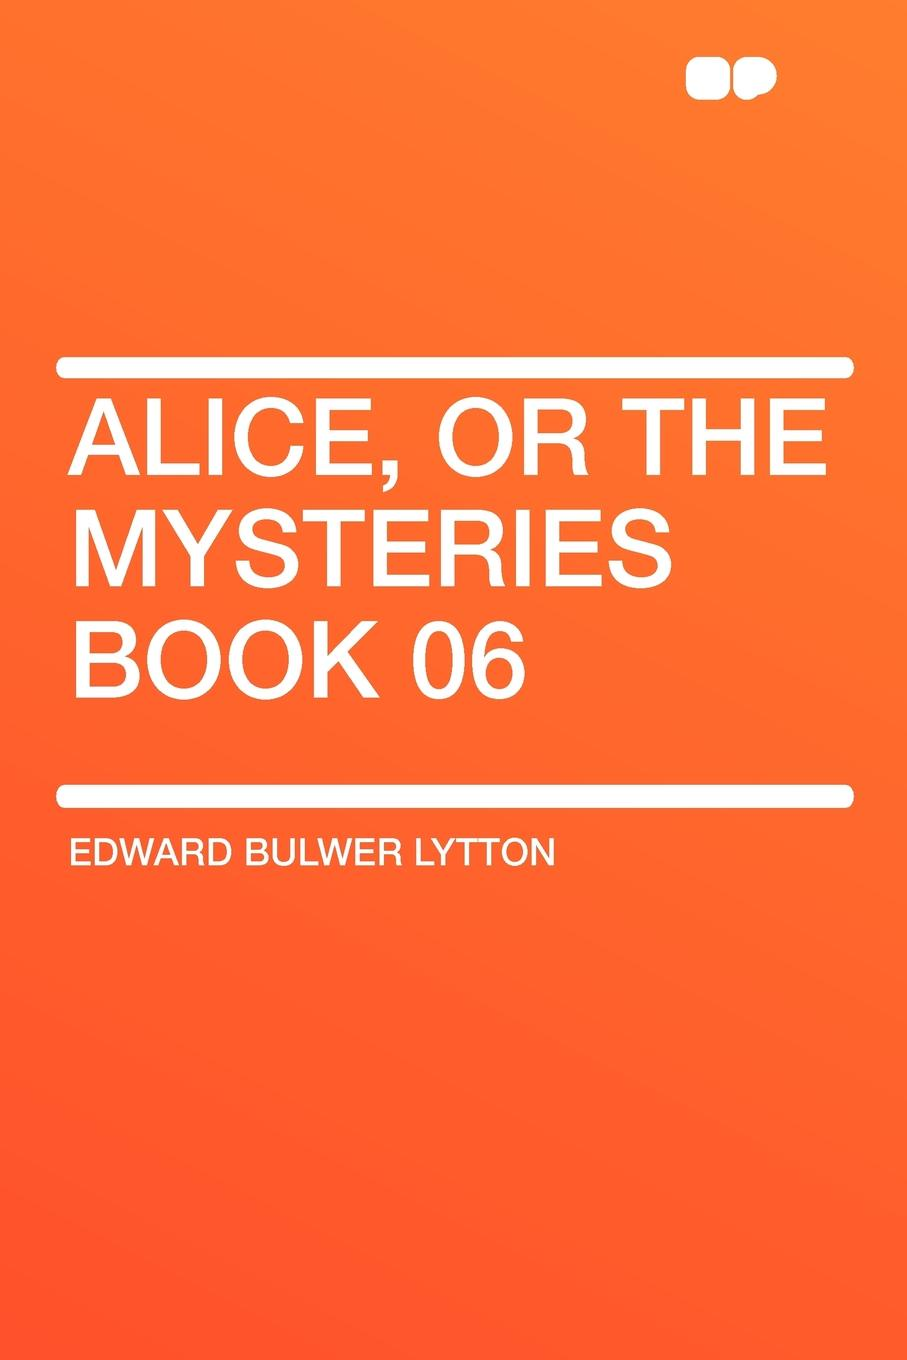 Edward Bulwer Lytton Alice, or the Mysteries Book 06 edward bulwer lytton alice or the mysteries